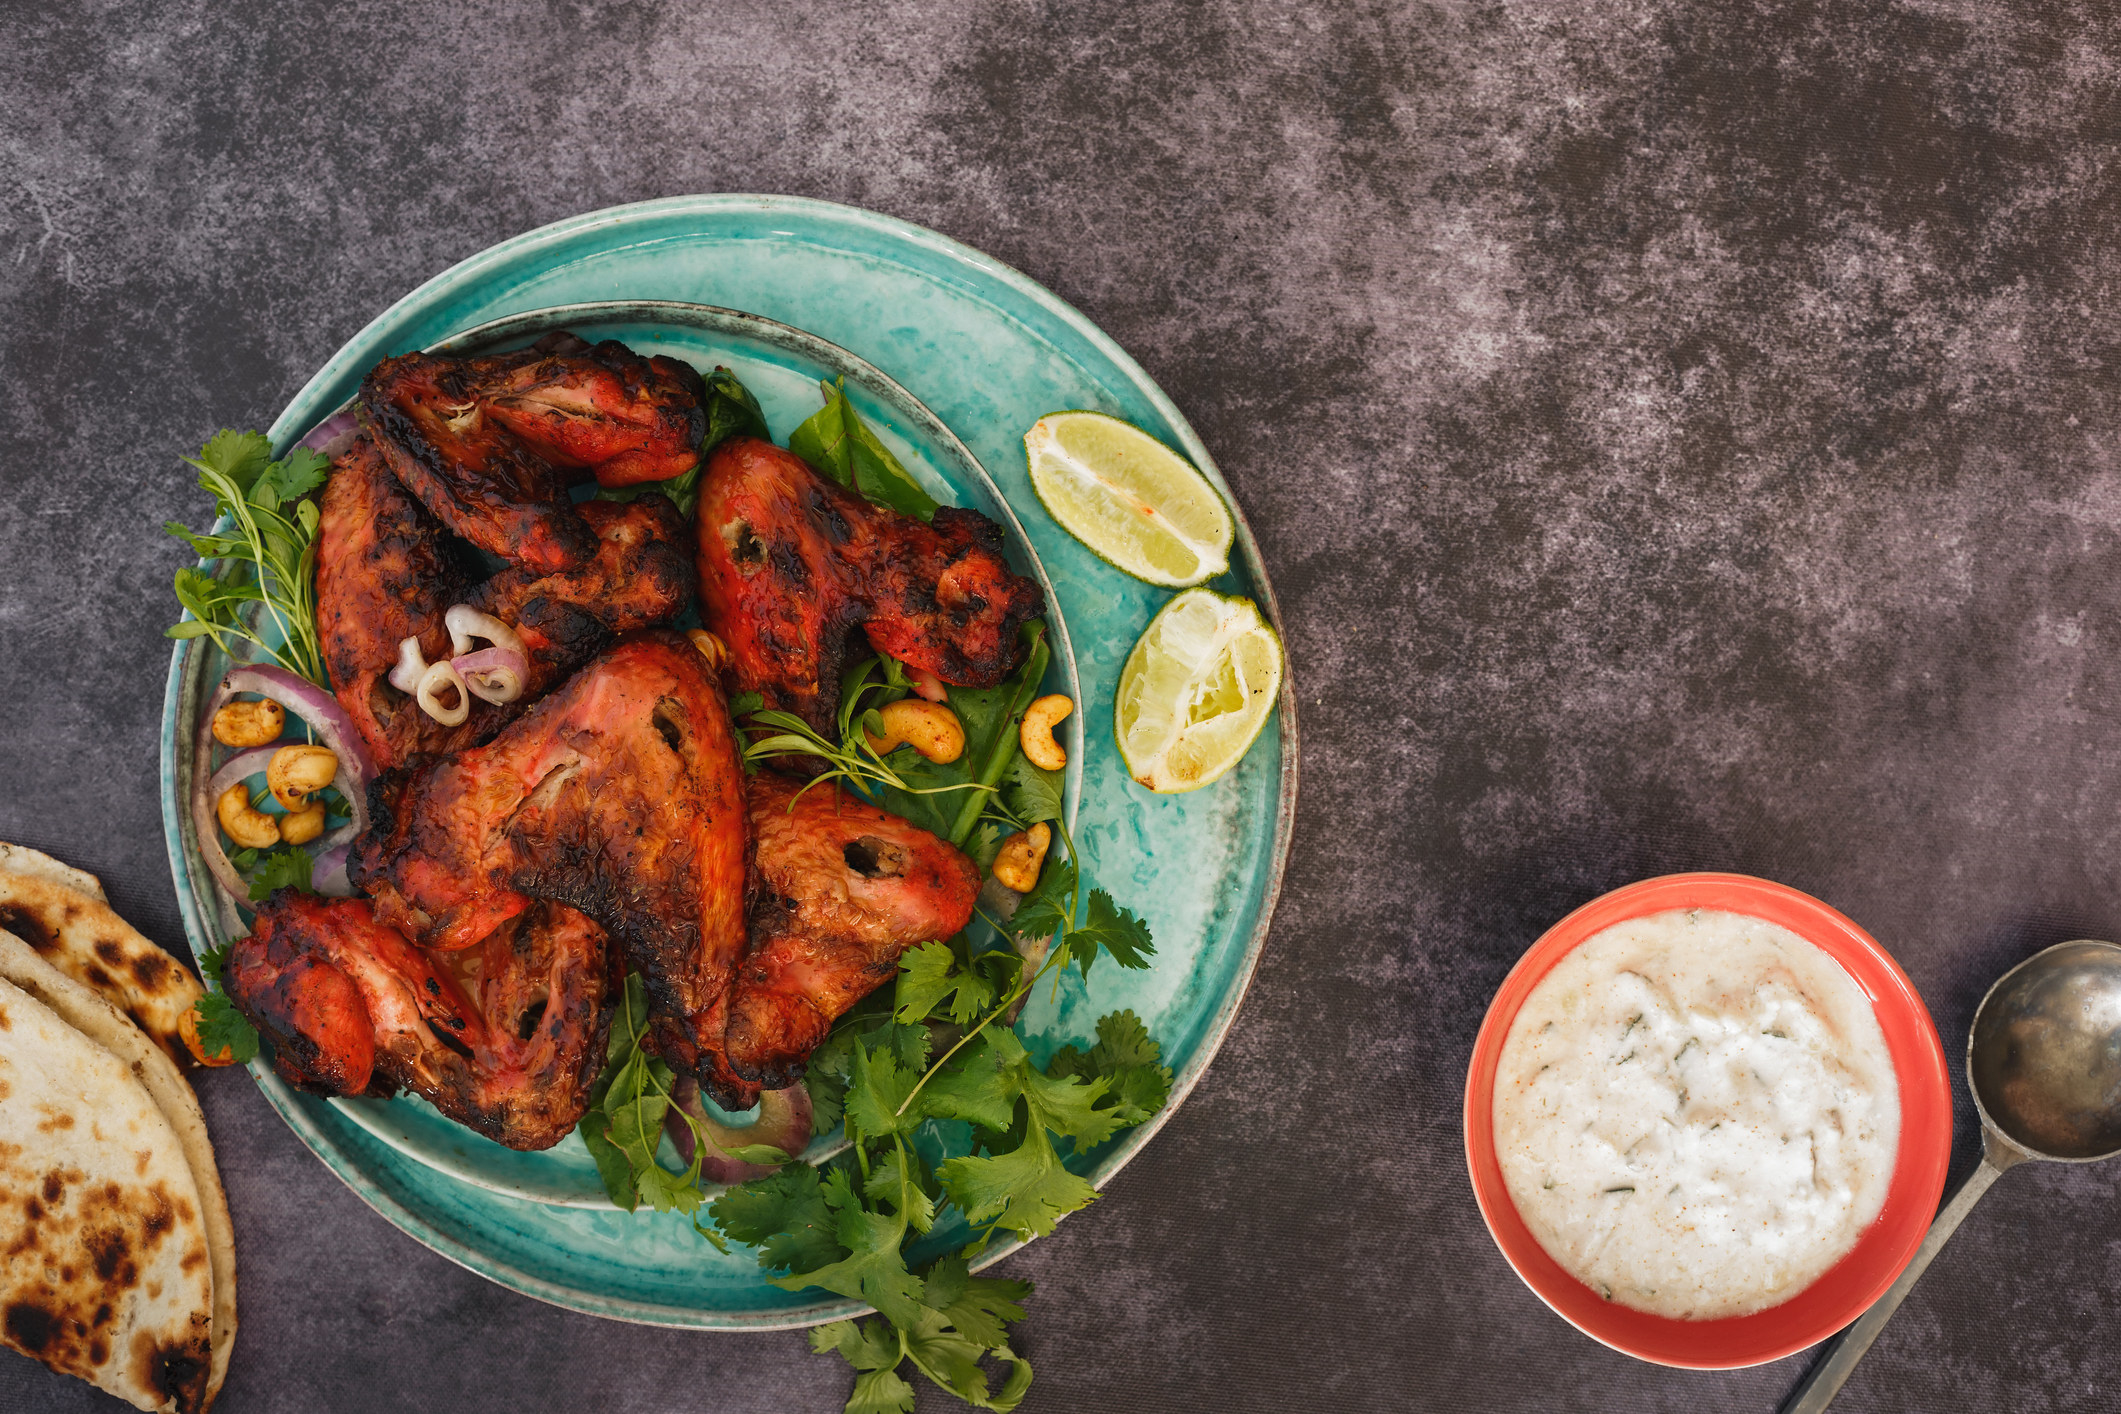 Spicy, roasted chicken wings marinated in an authentic Tandoori sauce